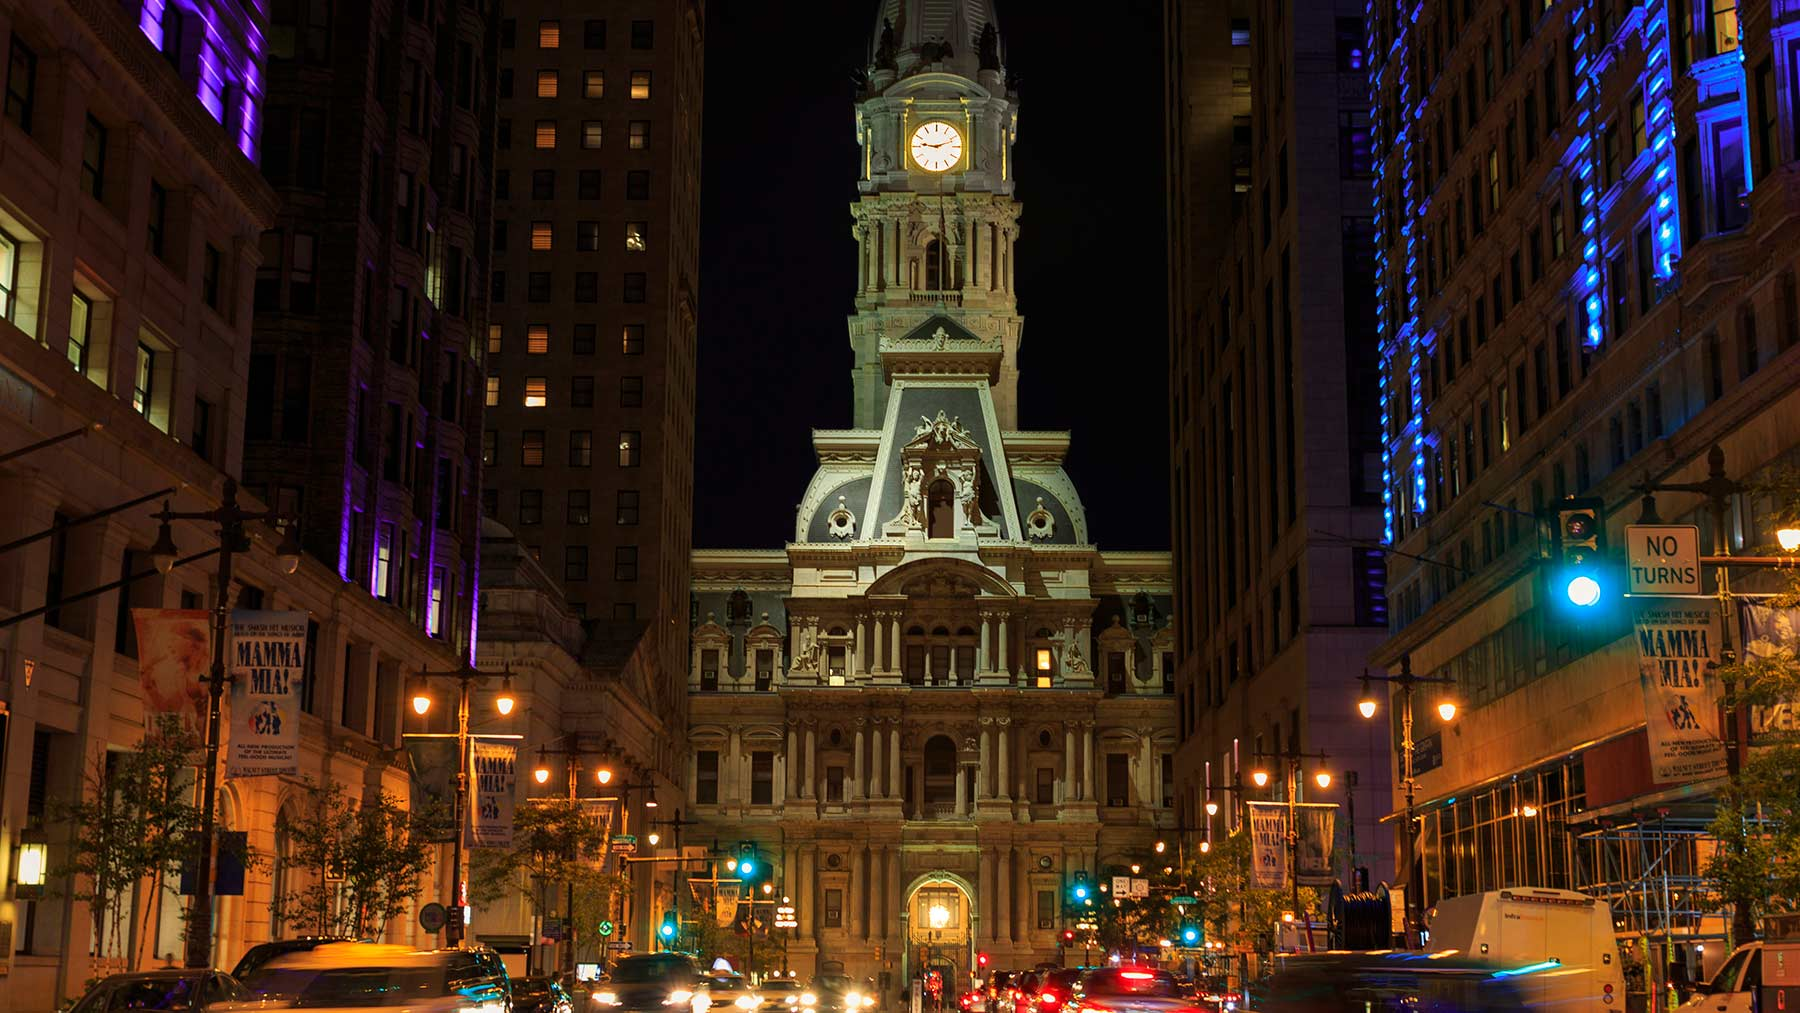 Broad Street in Philly at night